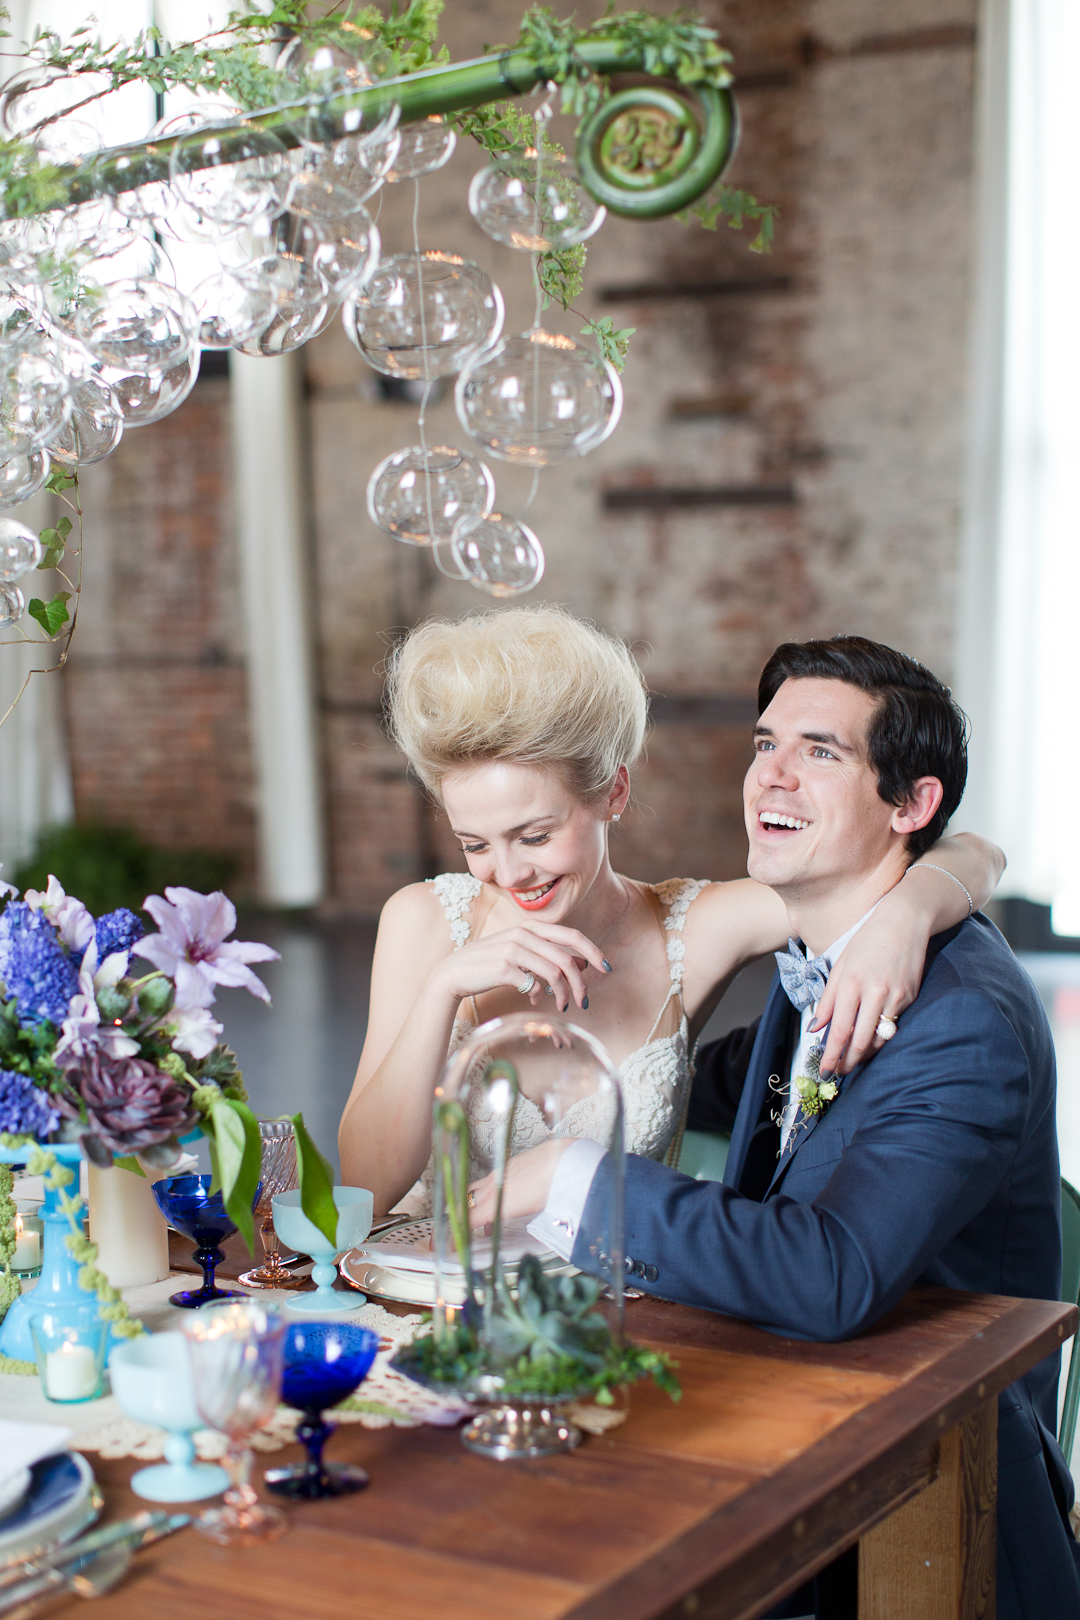 melissa kruse photography - bubbly bride styled shoot (the green building brooklyn) final web-430.jpg